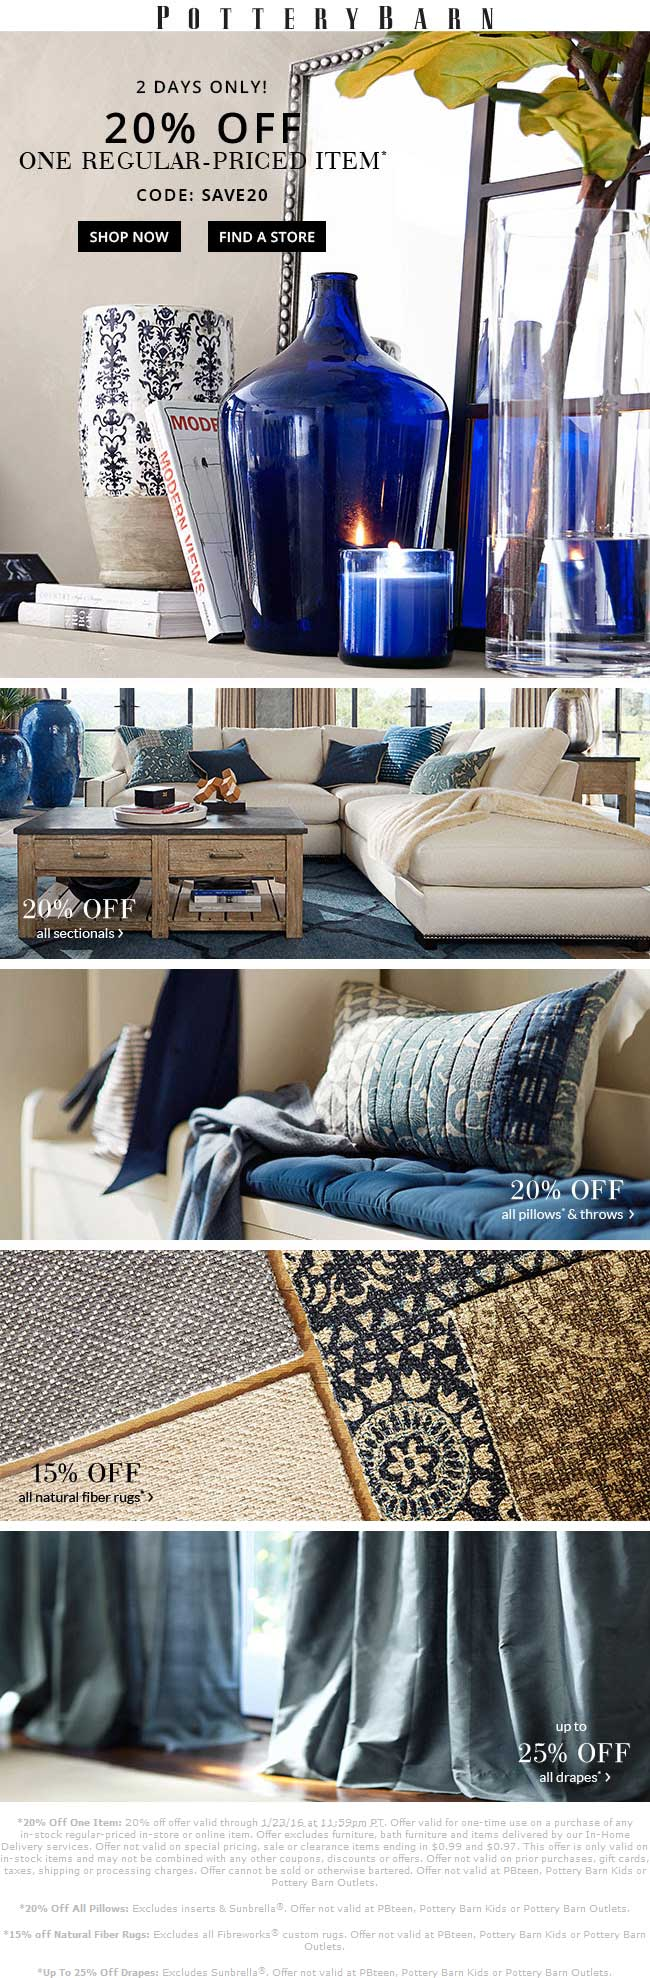 Pottery Barn Coupon October 2016 20% off a single item at Pottery Barn, or online via promo code SAVE20